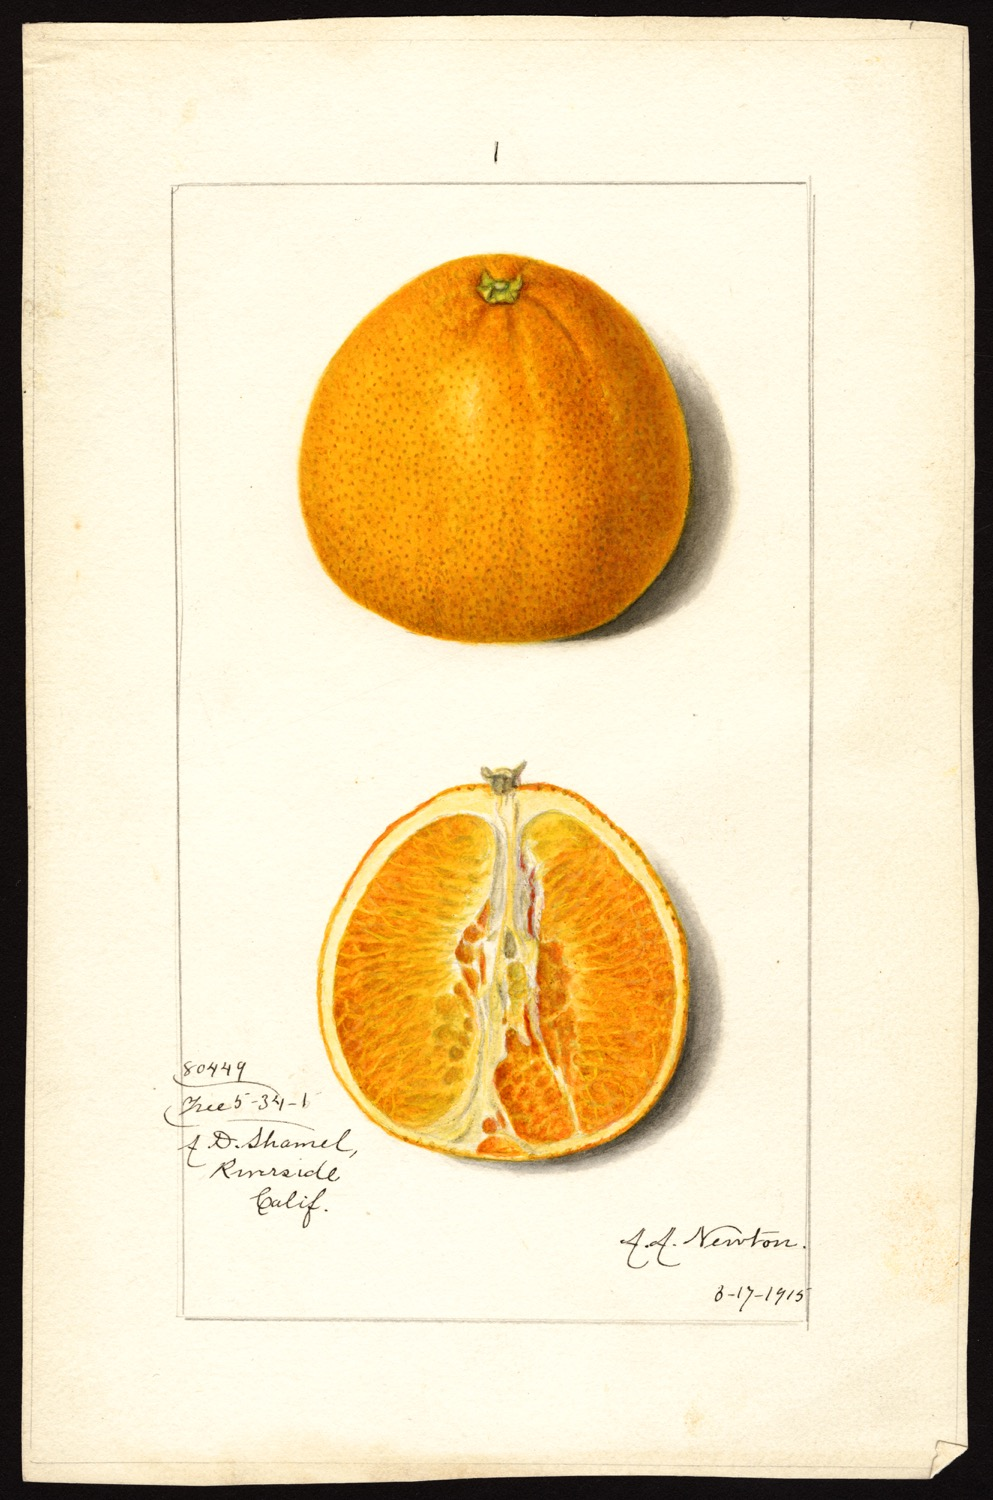 Amanda Almira Newton, arancia, 1915, (fonte: U.S. Department of Agriculture Pomological Watercolor Collection. Rare and Special Collections, National Agricultural Library, Beltsville, MD 20705)